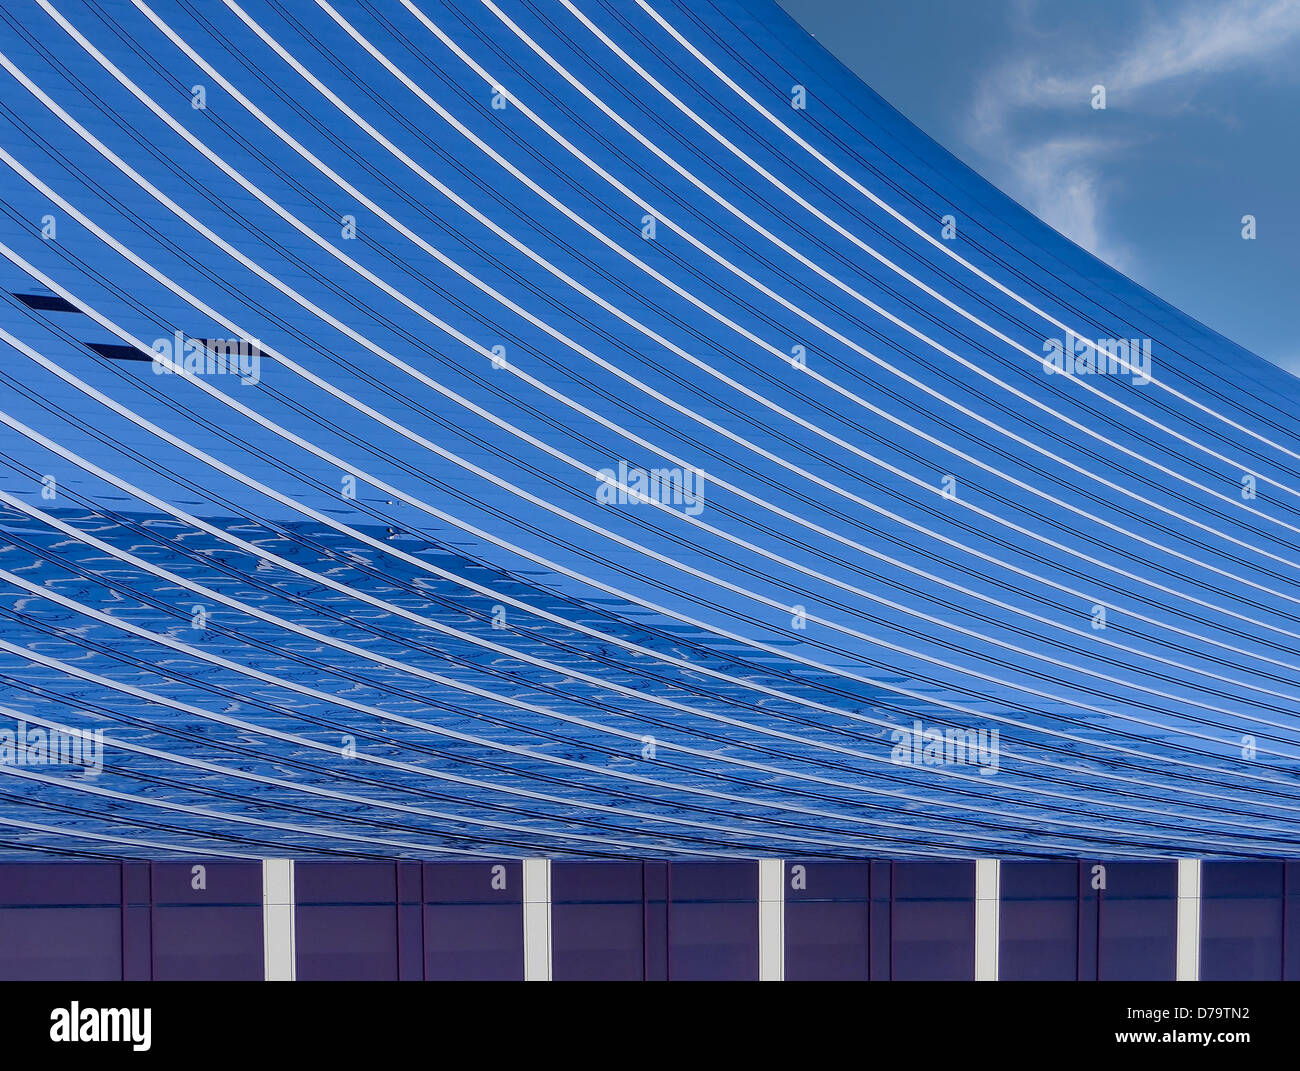 Architectural detail abstract background, - Stock Image